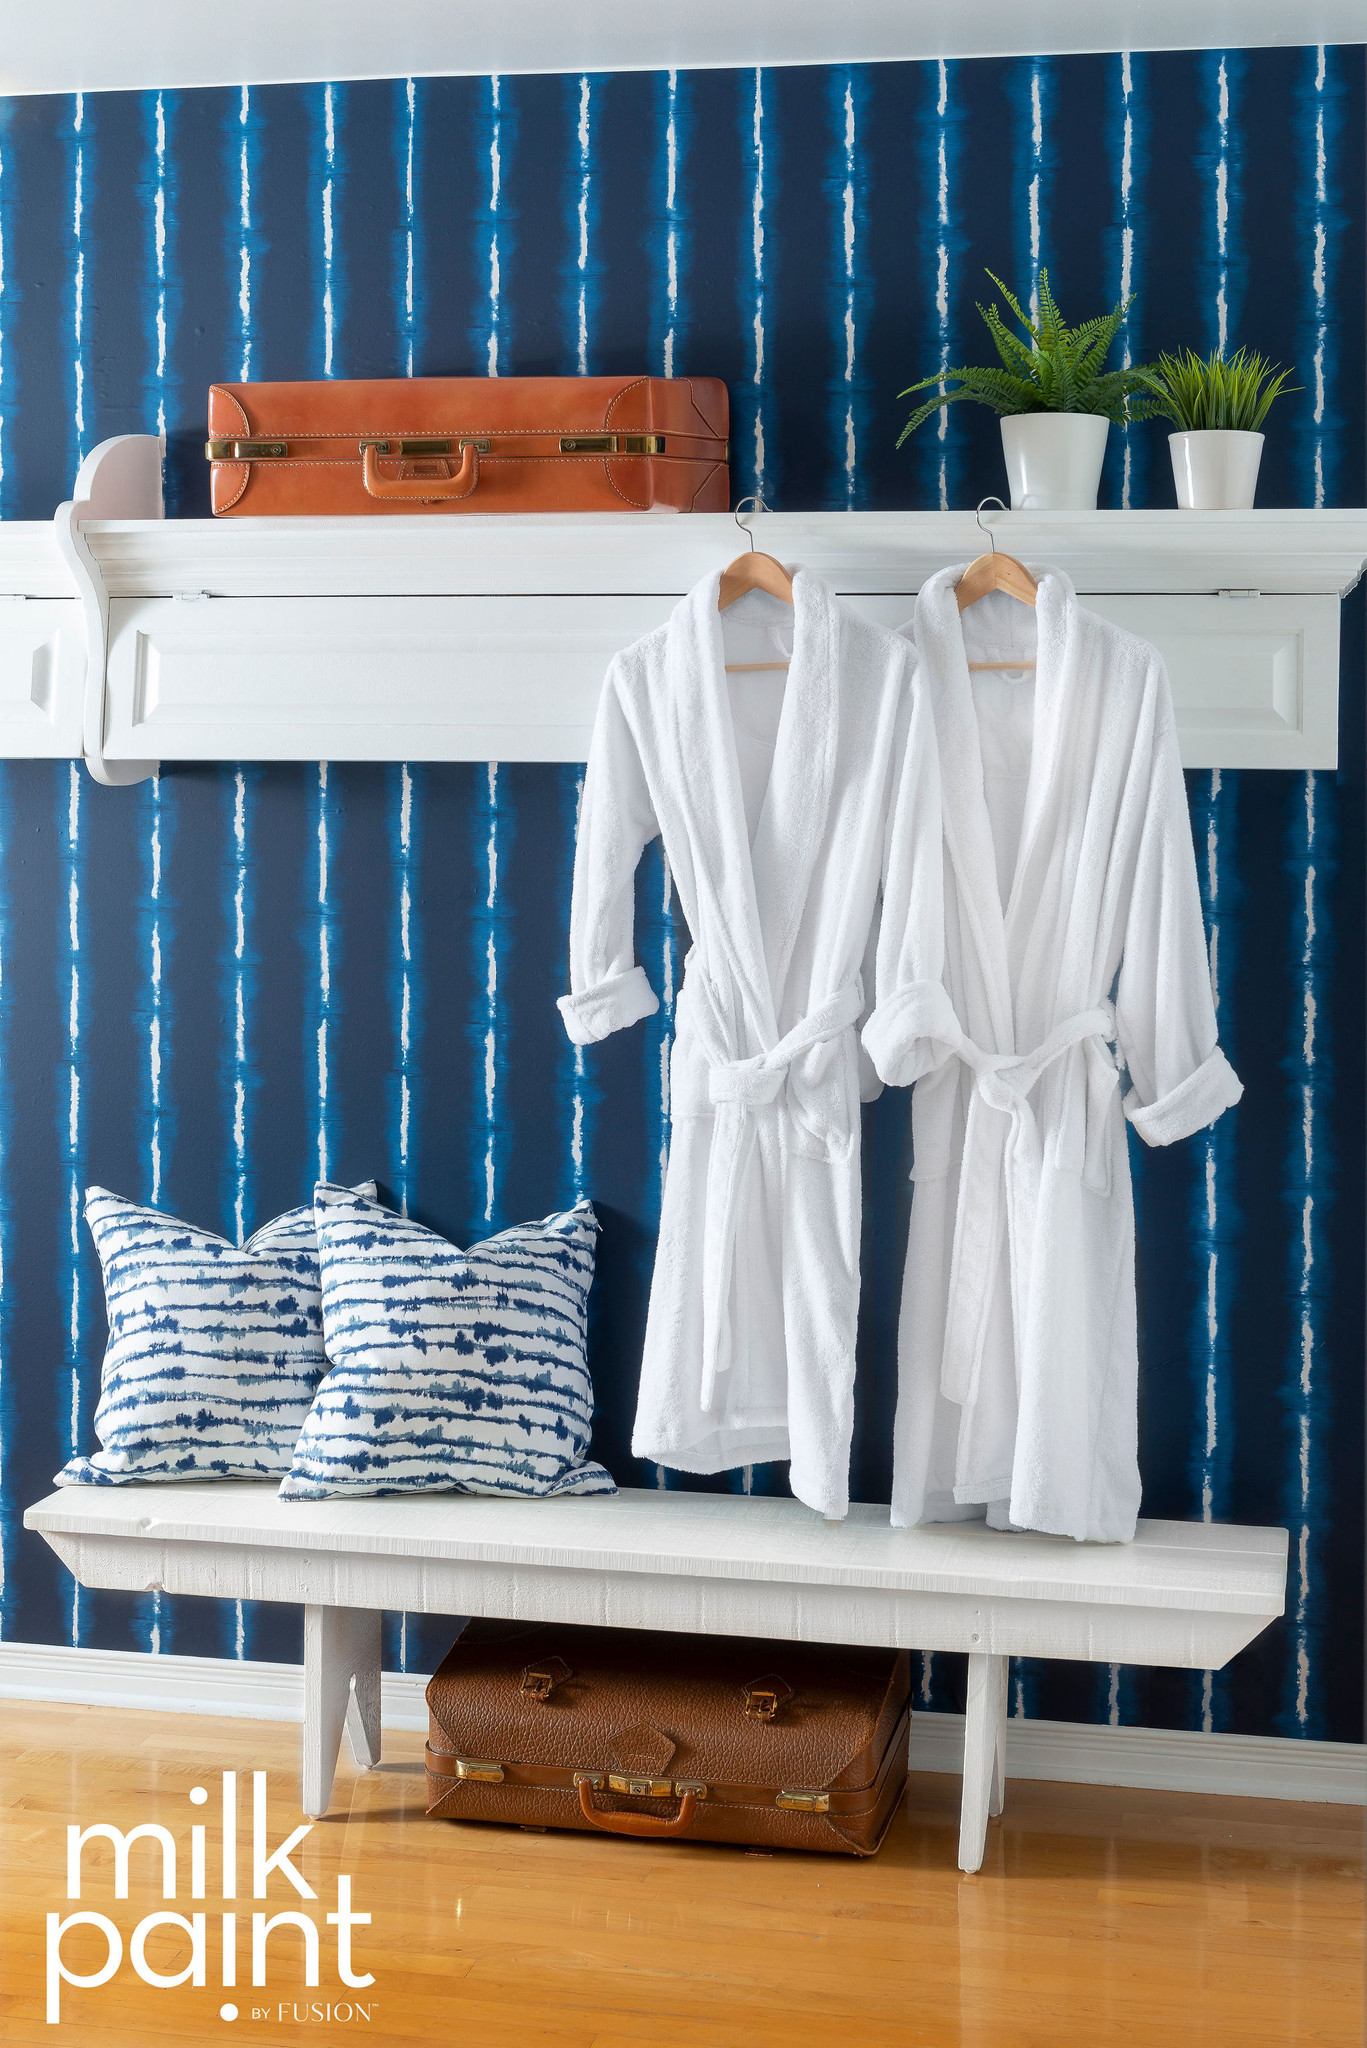 Fusion Mineral Paint Fusion - Milk Paint Hotel Robe - 330gr